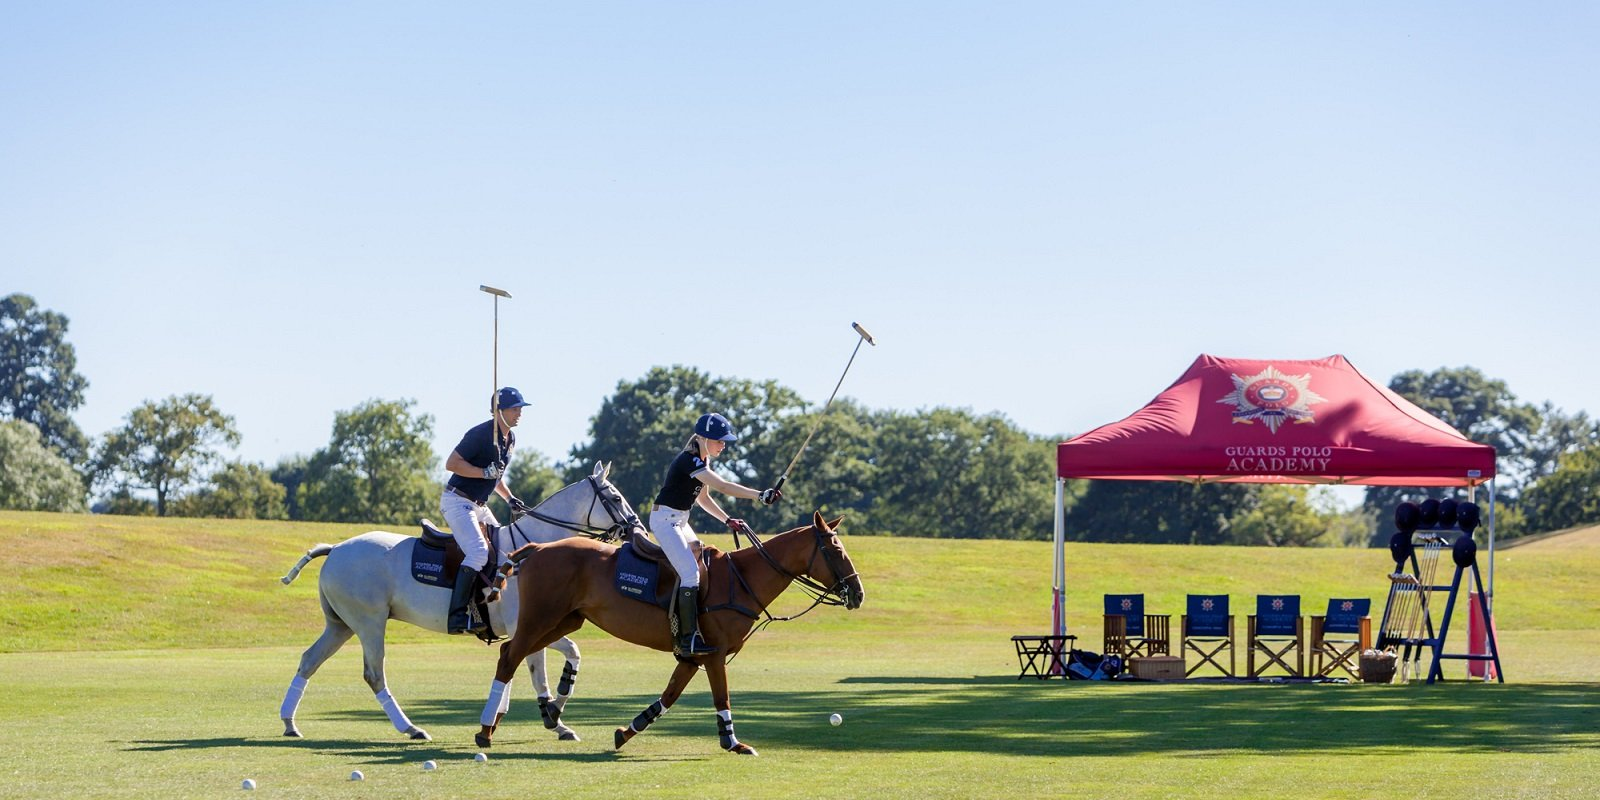 guards-polo-academy-coworth-park-polo-lesson-field